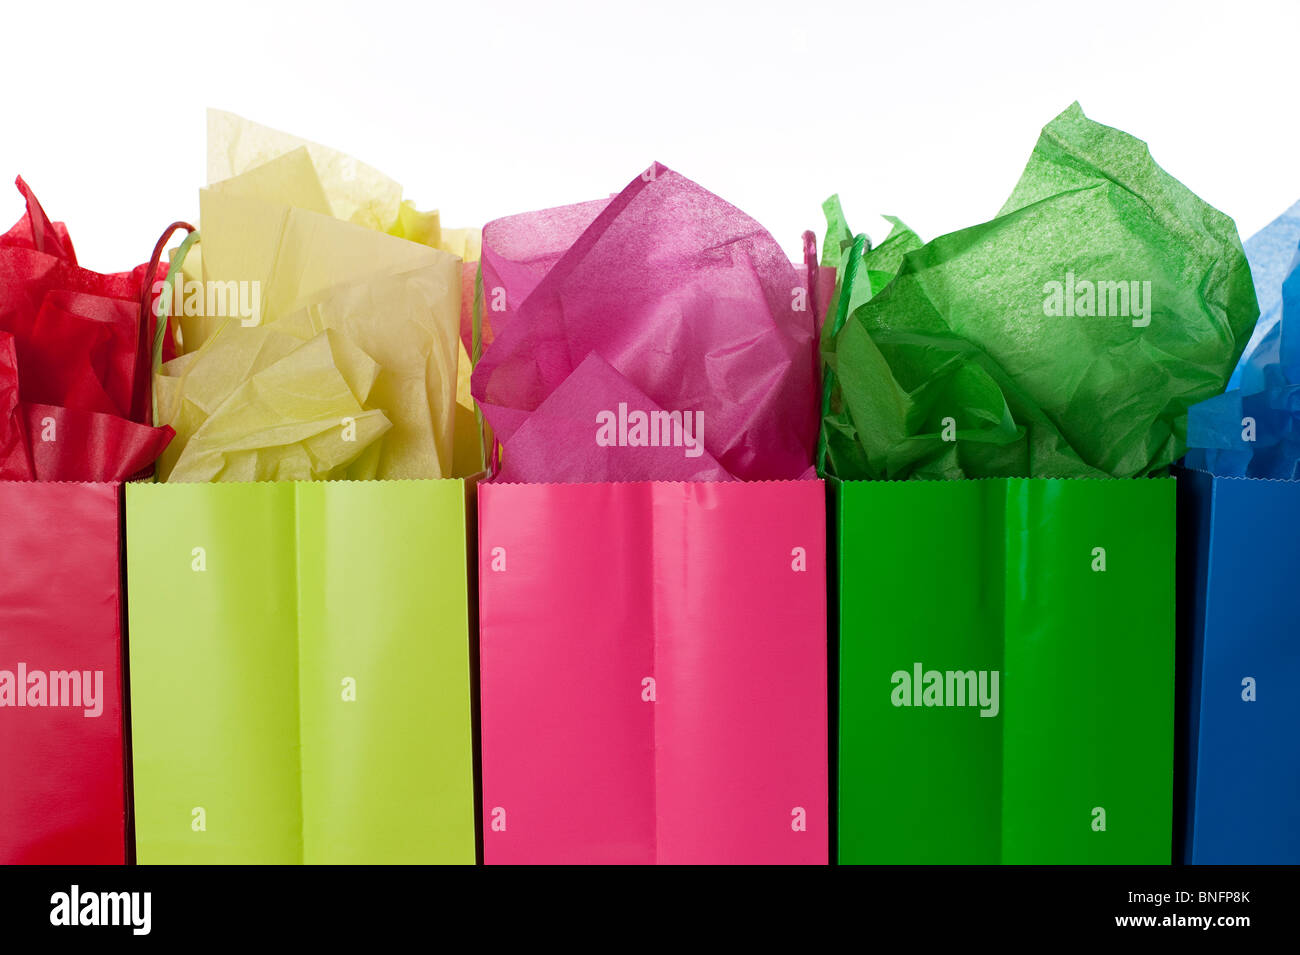 MultiColored Gift Bags with colorful tissue studio image - Stock Image